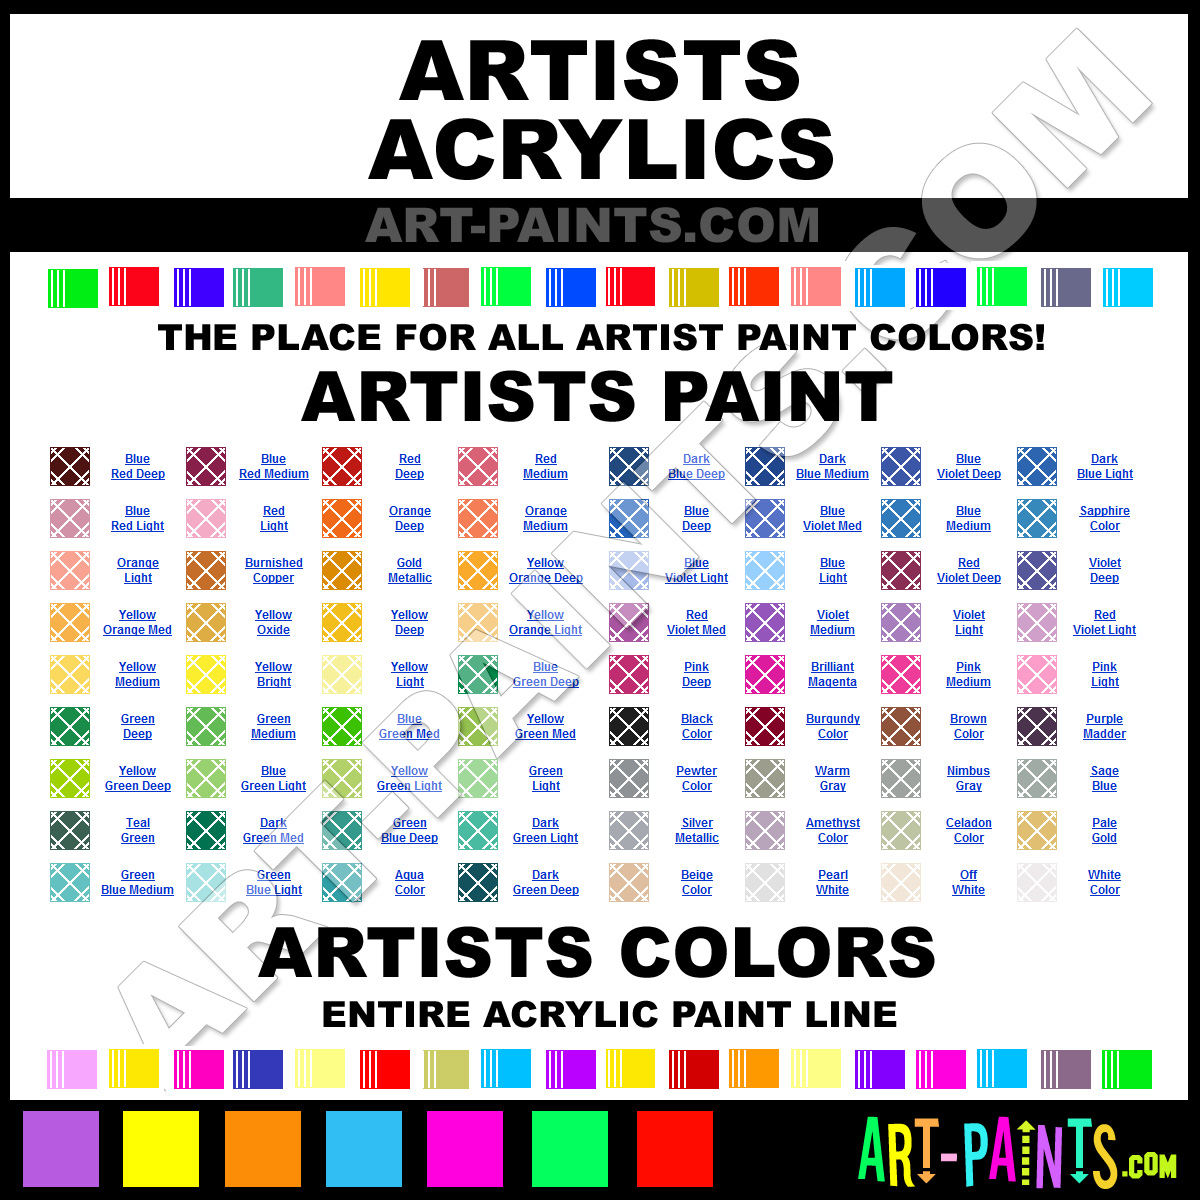 Artists Acrylic Paint Brands